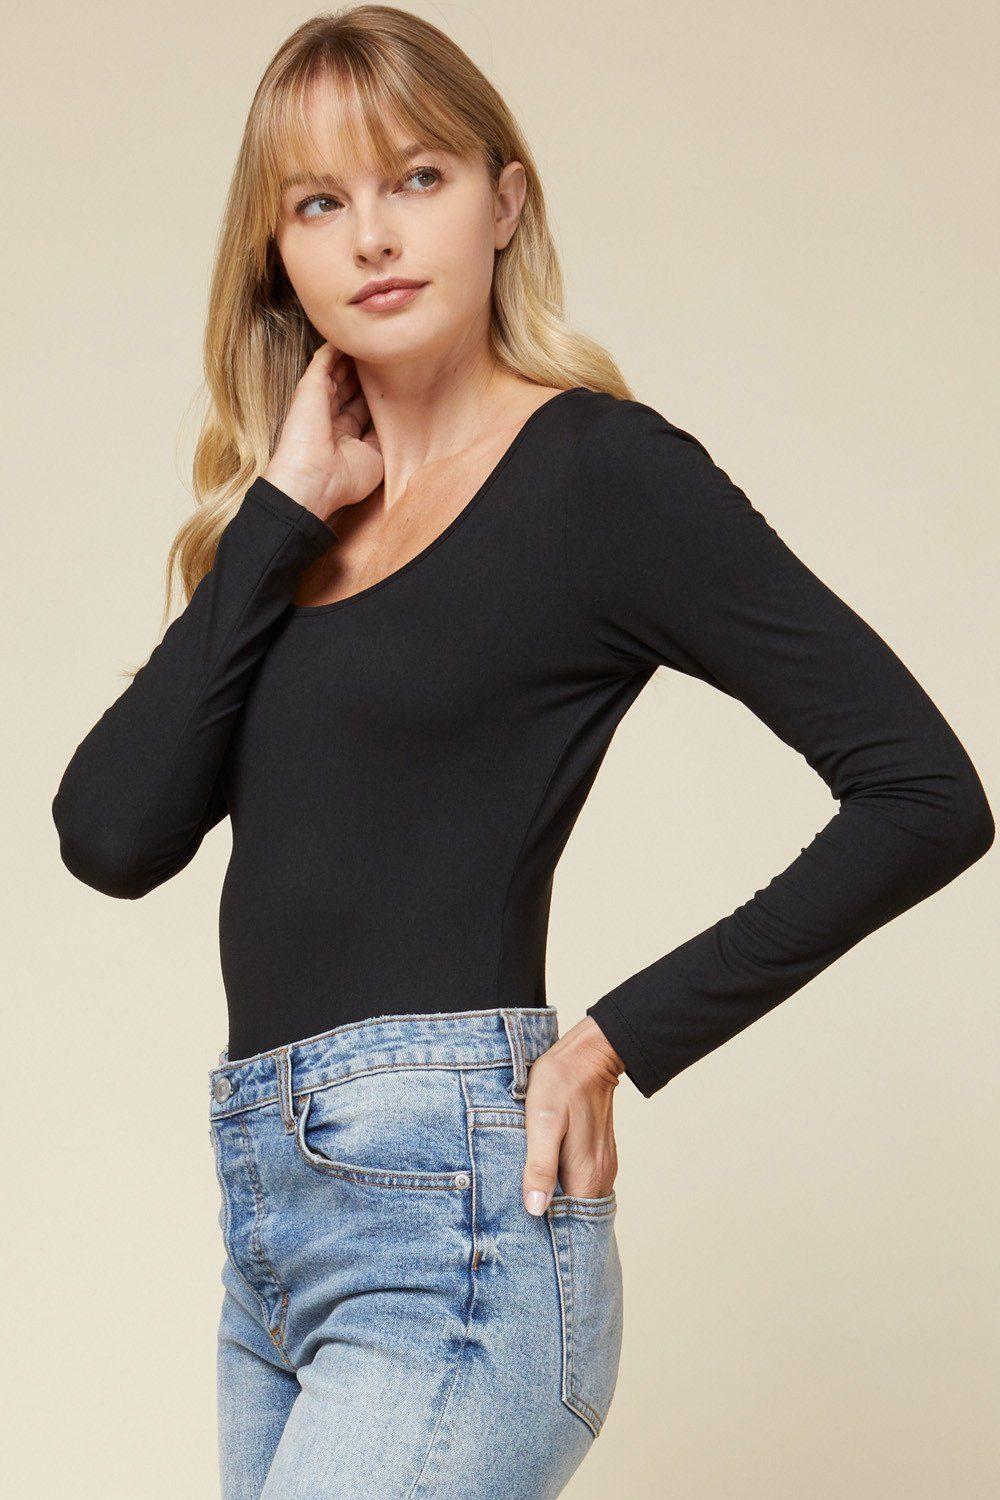 Everyday Basic Black Bodysuit - Caroline Hill